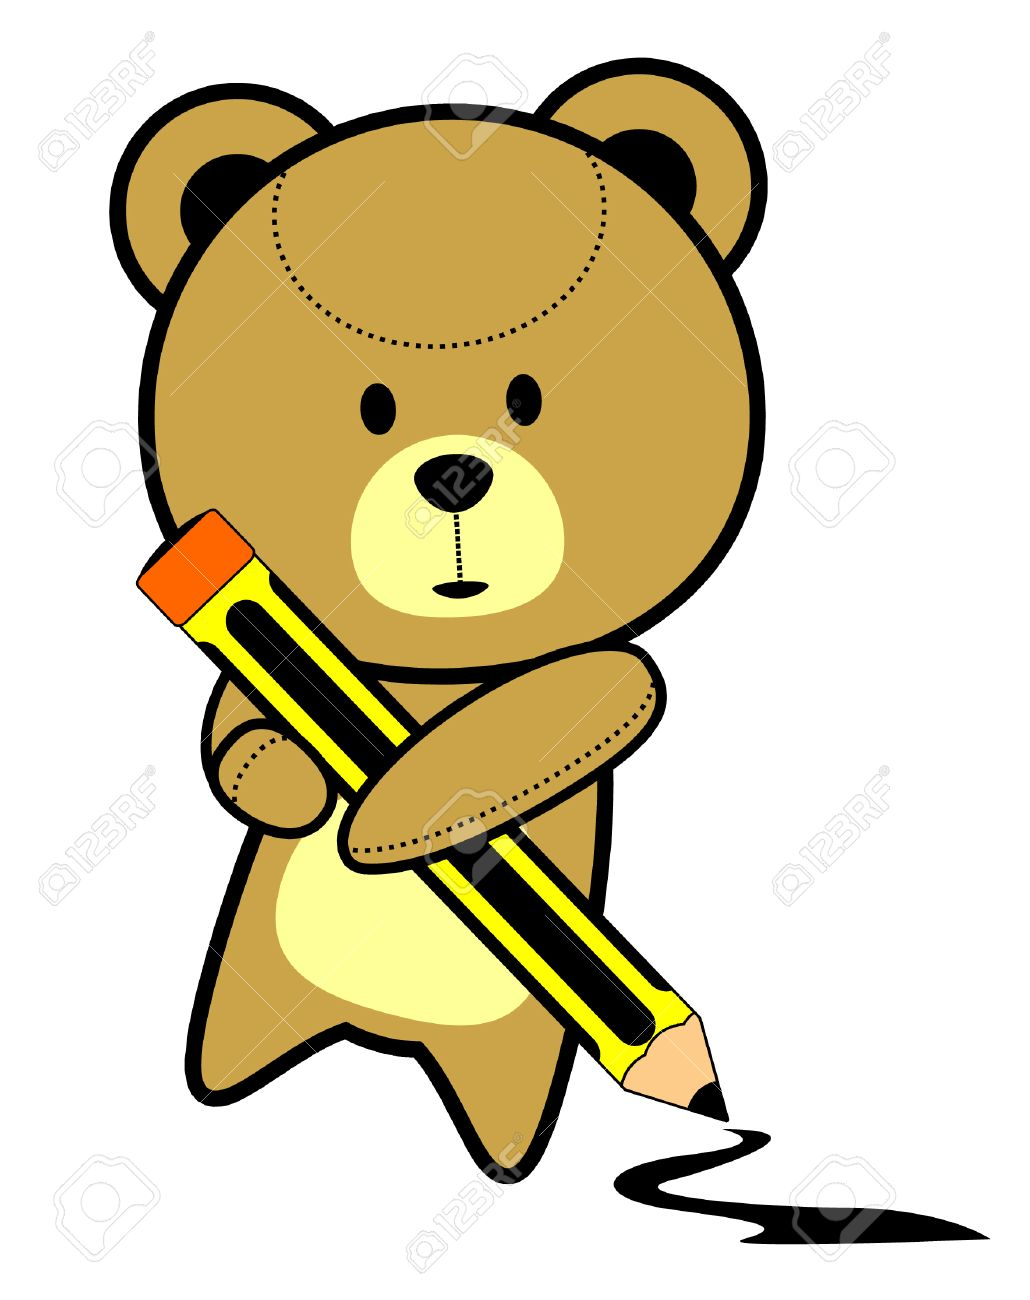 1030x1300 Cute Teddy Bear Drawing Royalty Free Cliparts, Vectors, And Stock